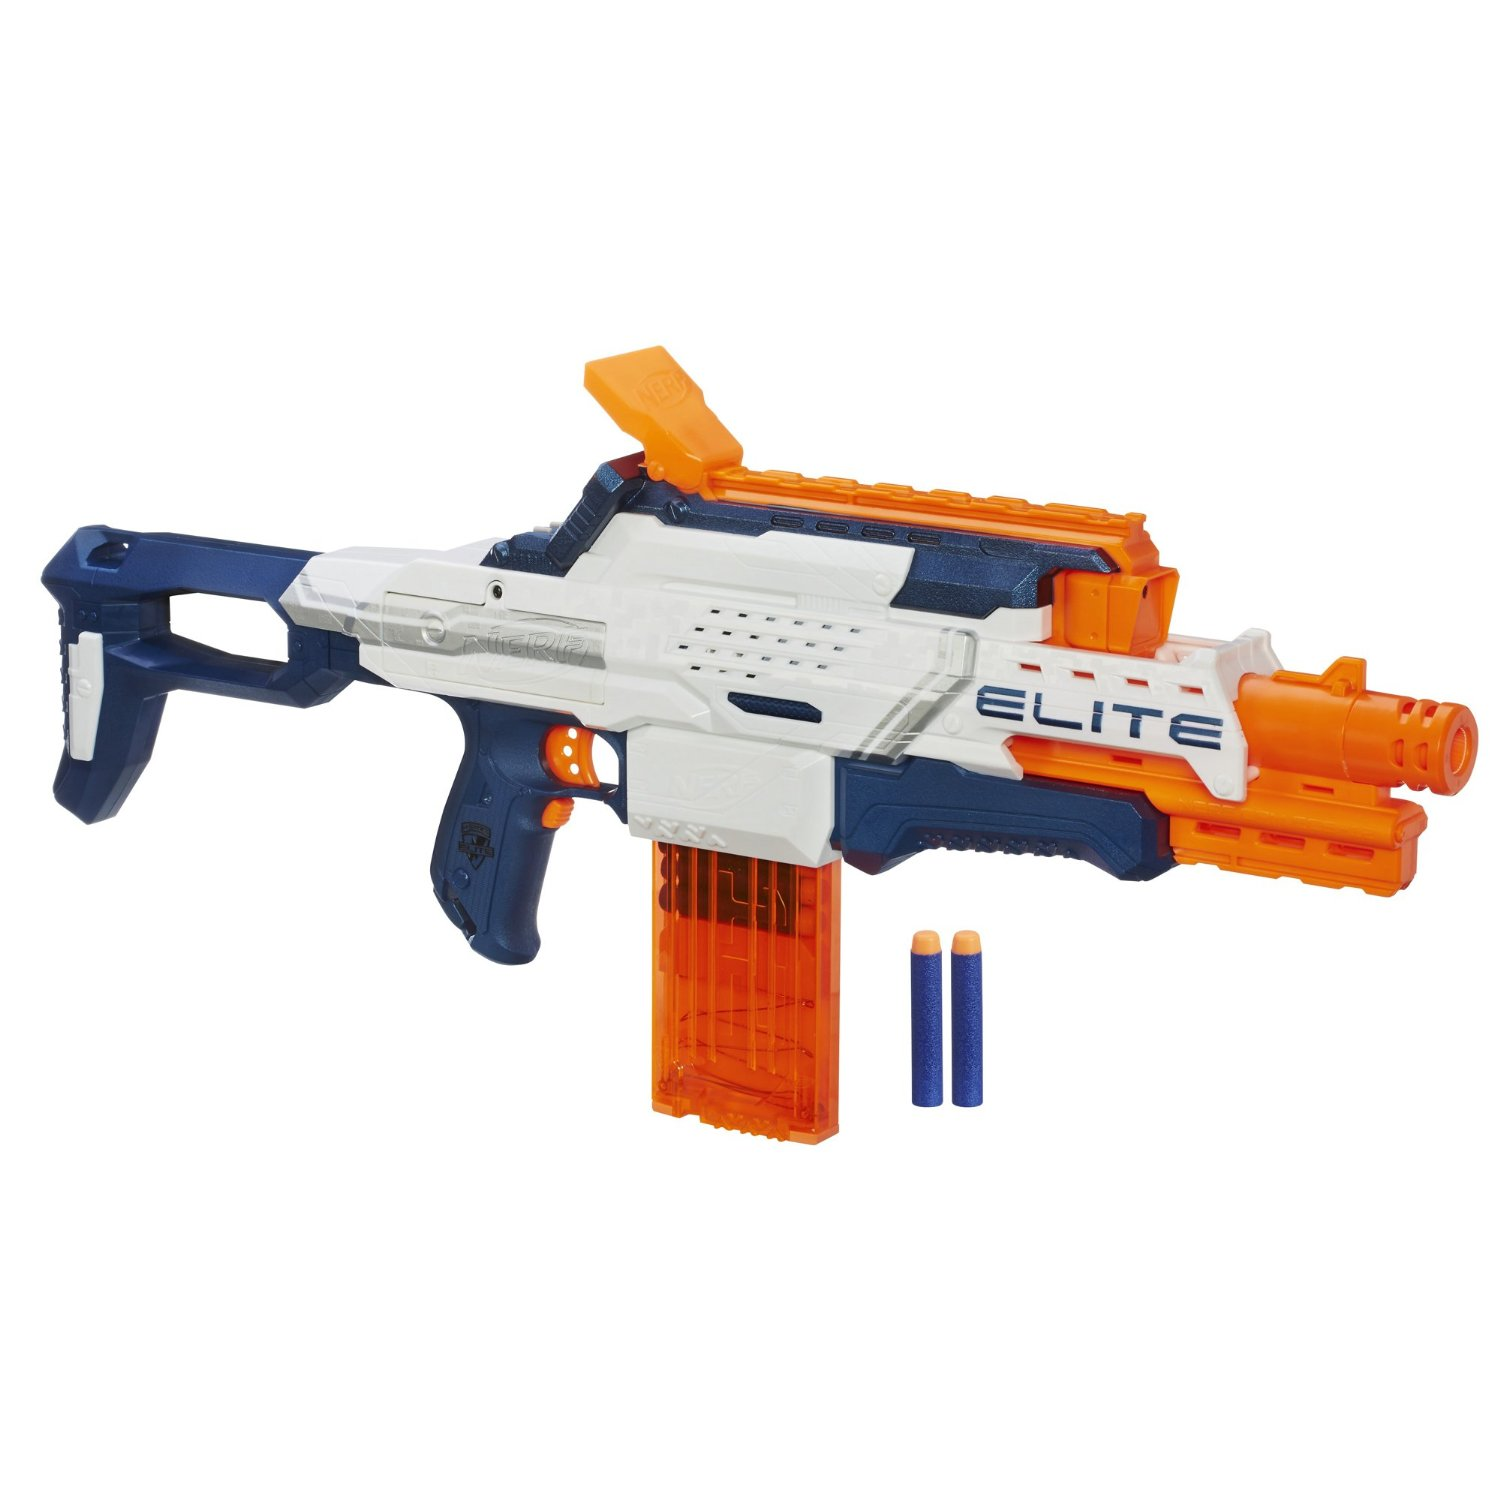 Nerf N-Strike Elite Nerf Cam ECS-12 Blaster